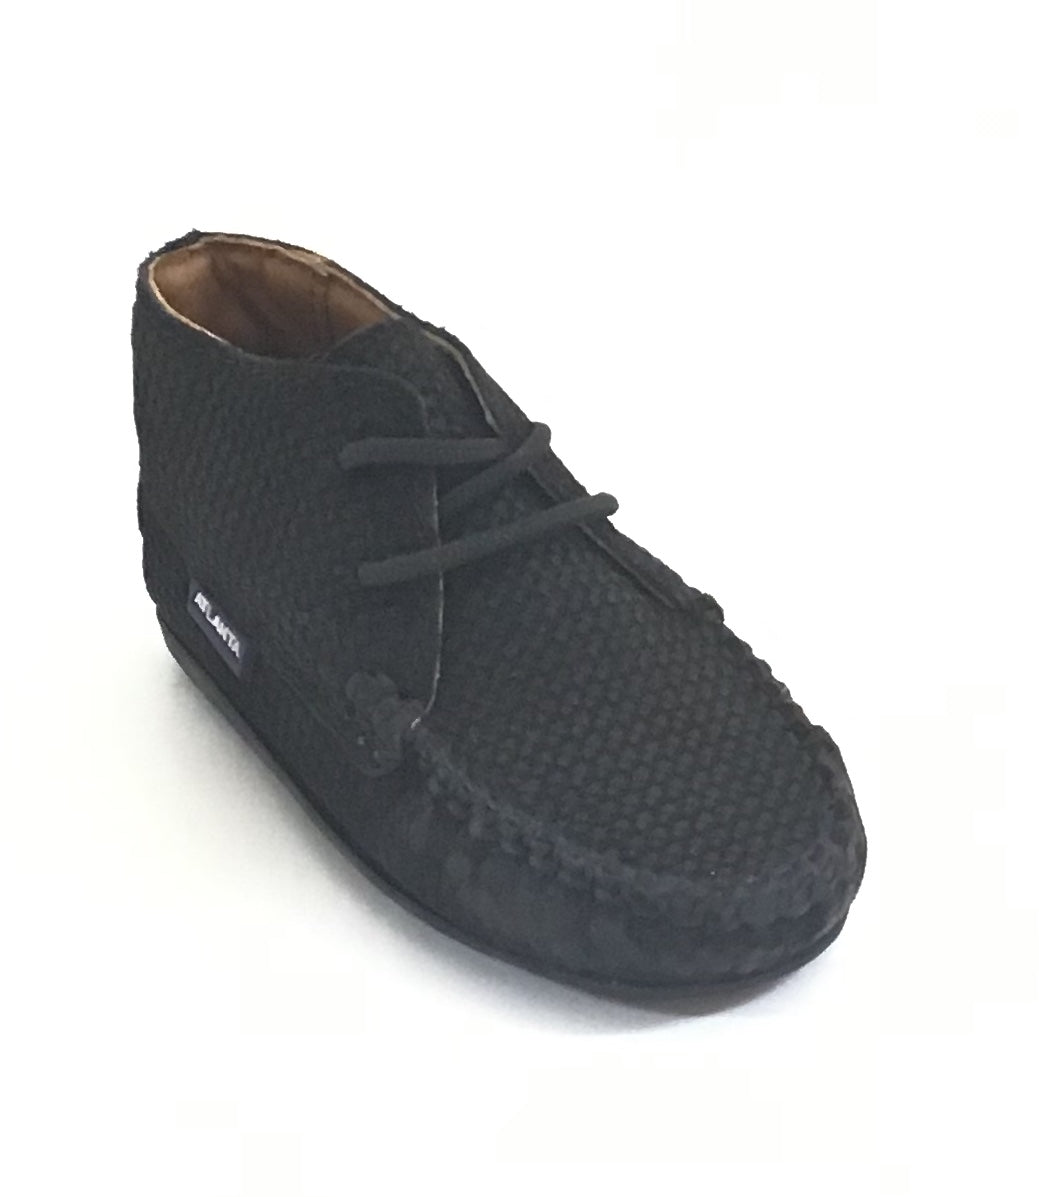 Atlanta Mocassin Black Suede Lace Up Mocassin